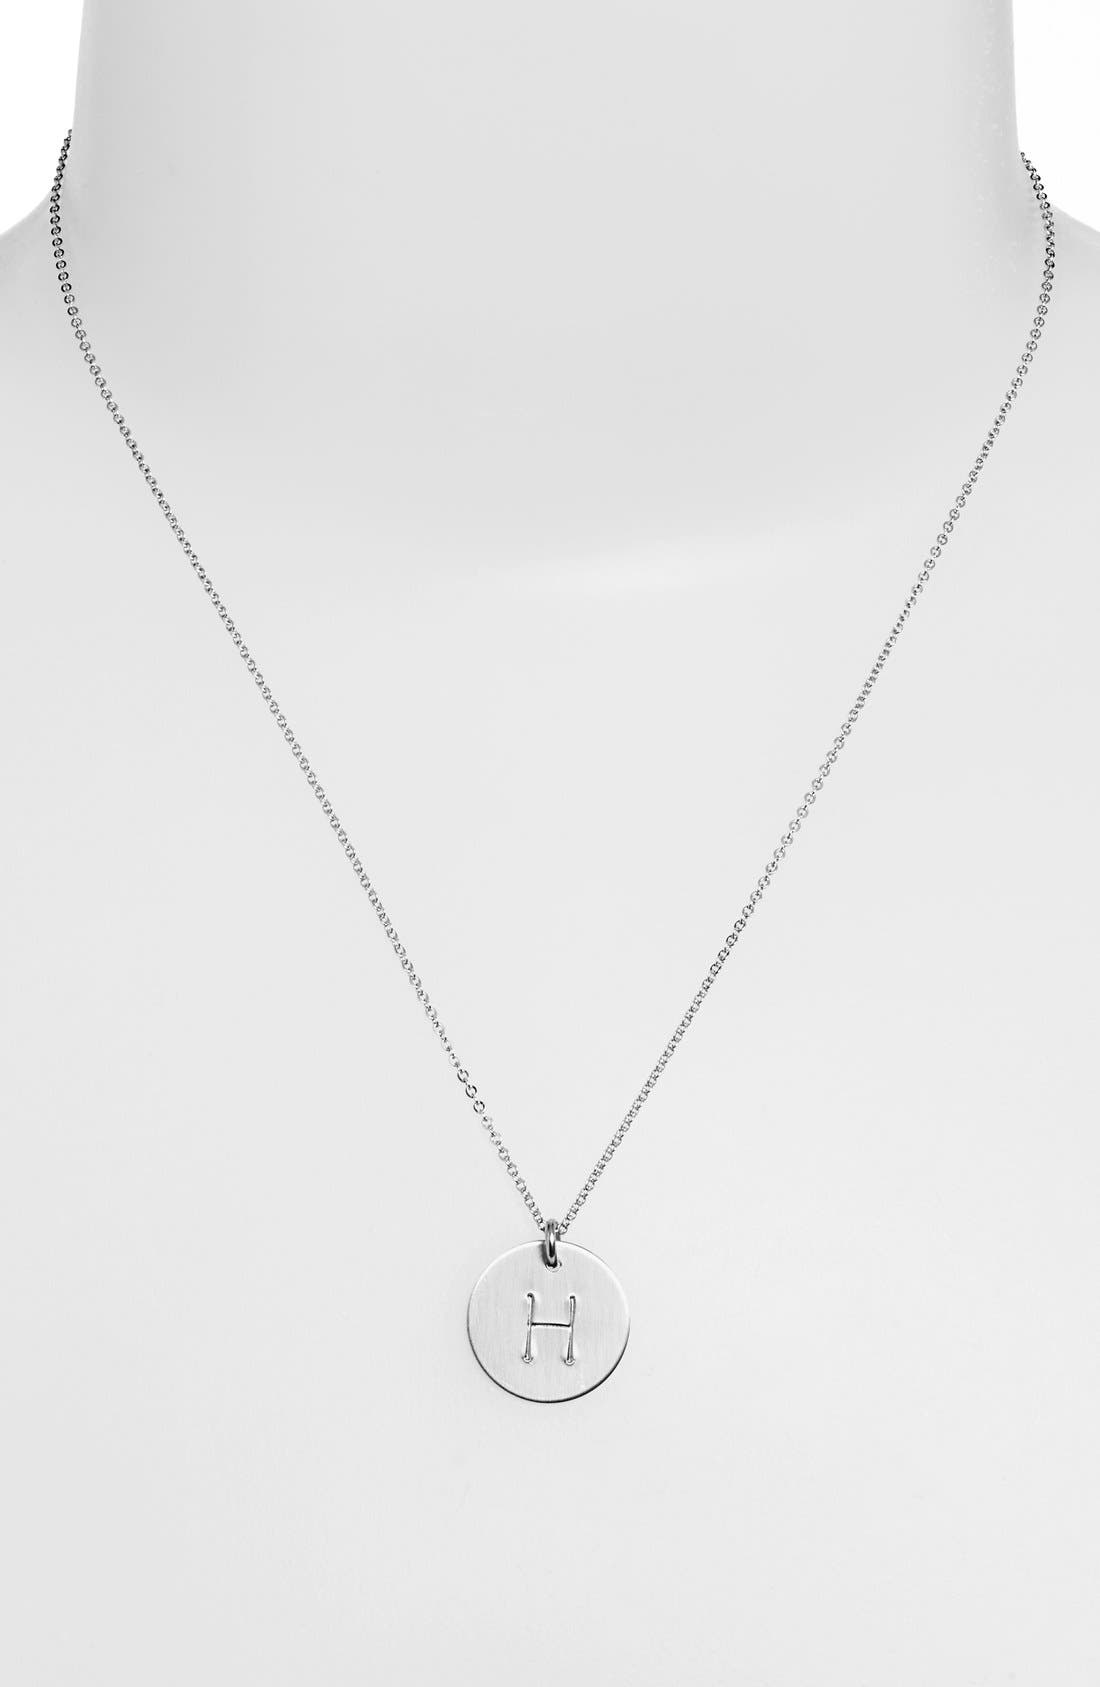 From humble beginnings to a fully staffed warehouse in Bend, Oregon, Nashelle remains true to its original purpose-handmade jewelry crafted with love and intention. A hand-stamped initial is centered on a gorgeous sterling silver disc attached to a chain-link necklace. Style Name: Nashelle Sterling Silver Initial Disc Necklace. Style Number: 813134. Available in stores.